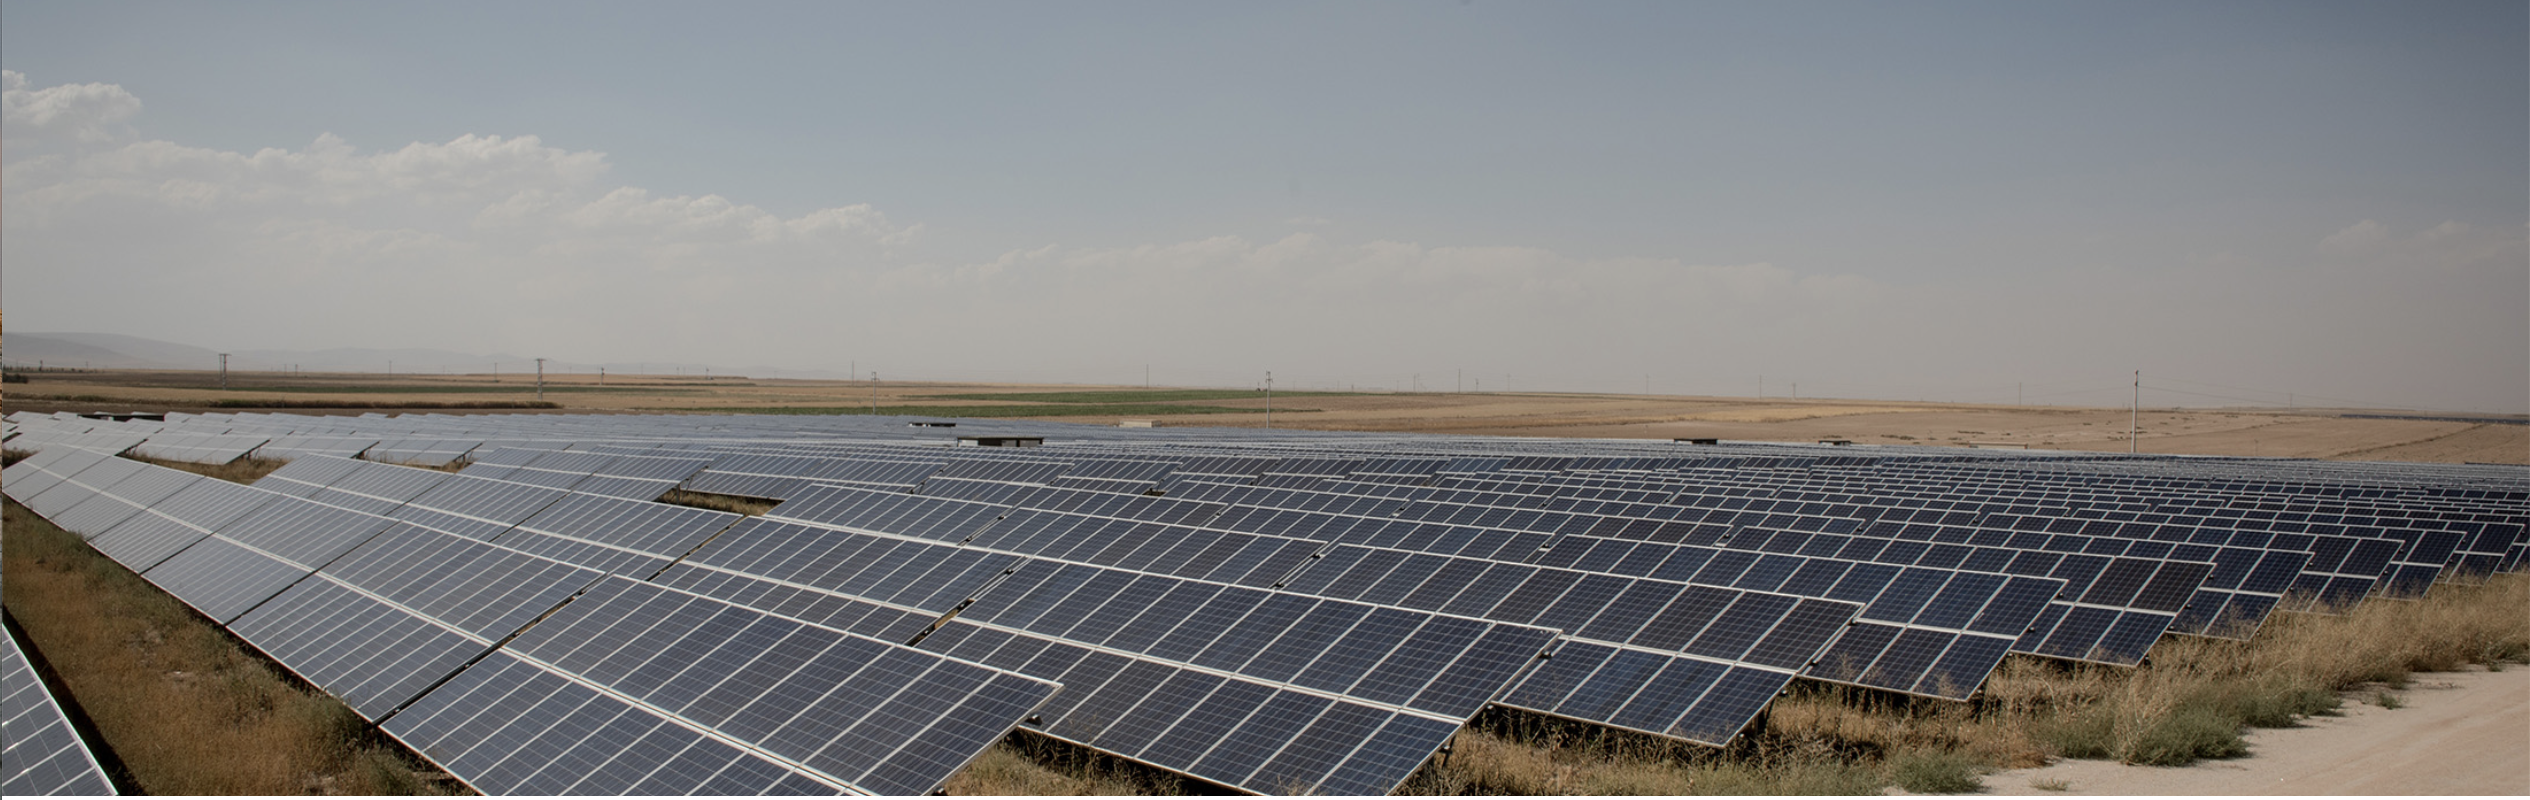 Iraq Plans to Build 10 Gigawatts of Solar Projects Over 10 Years